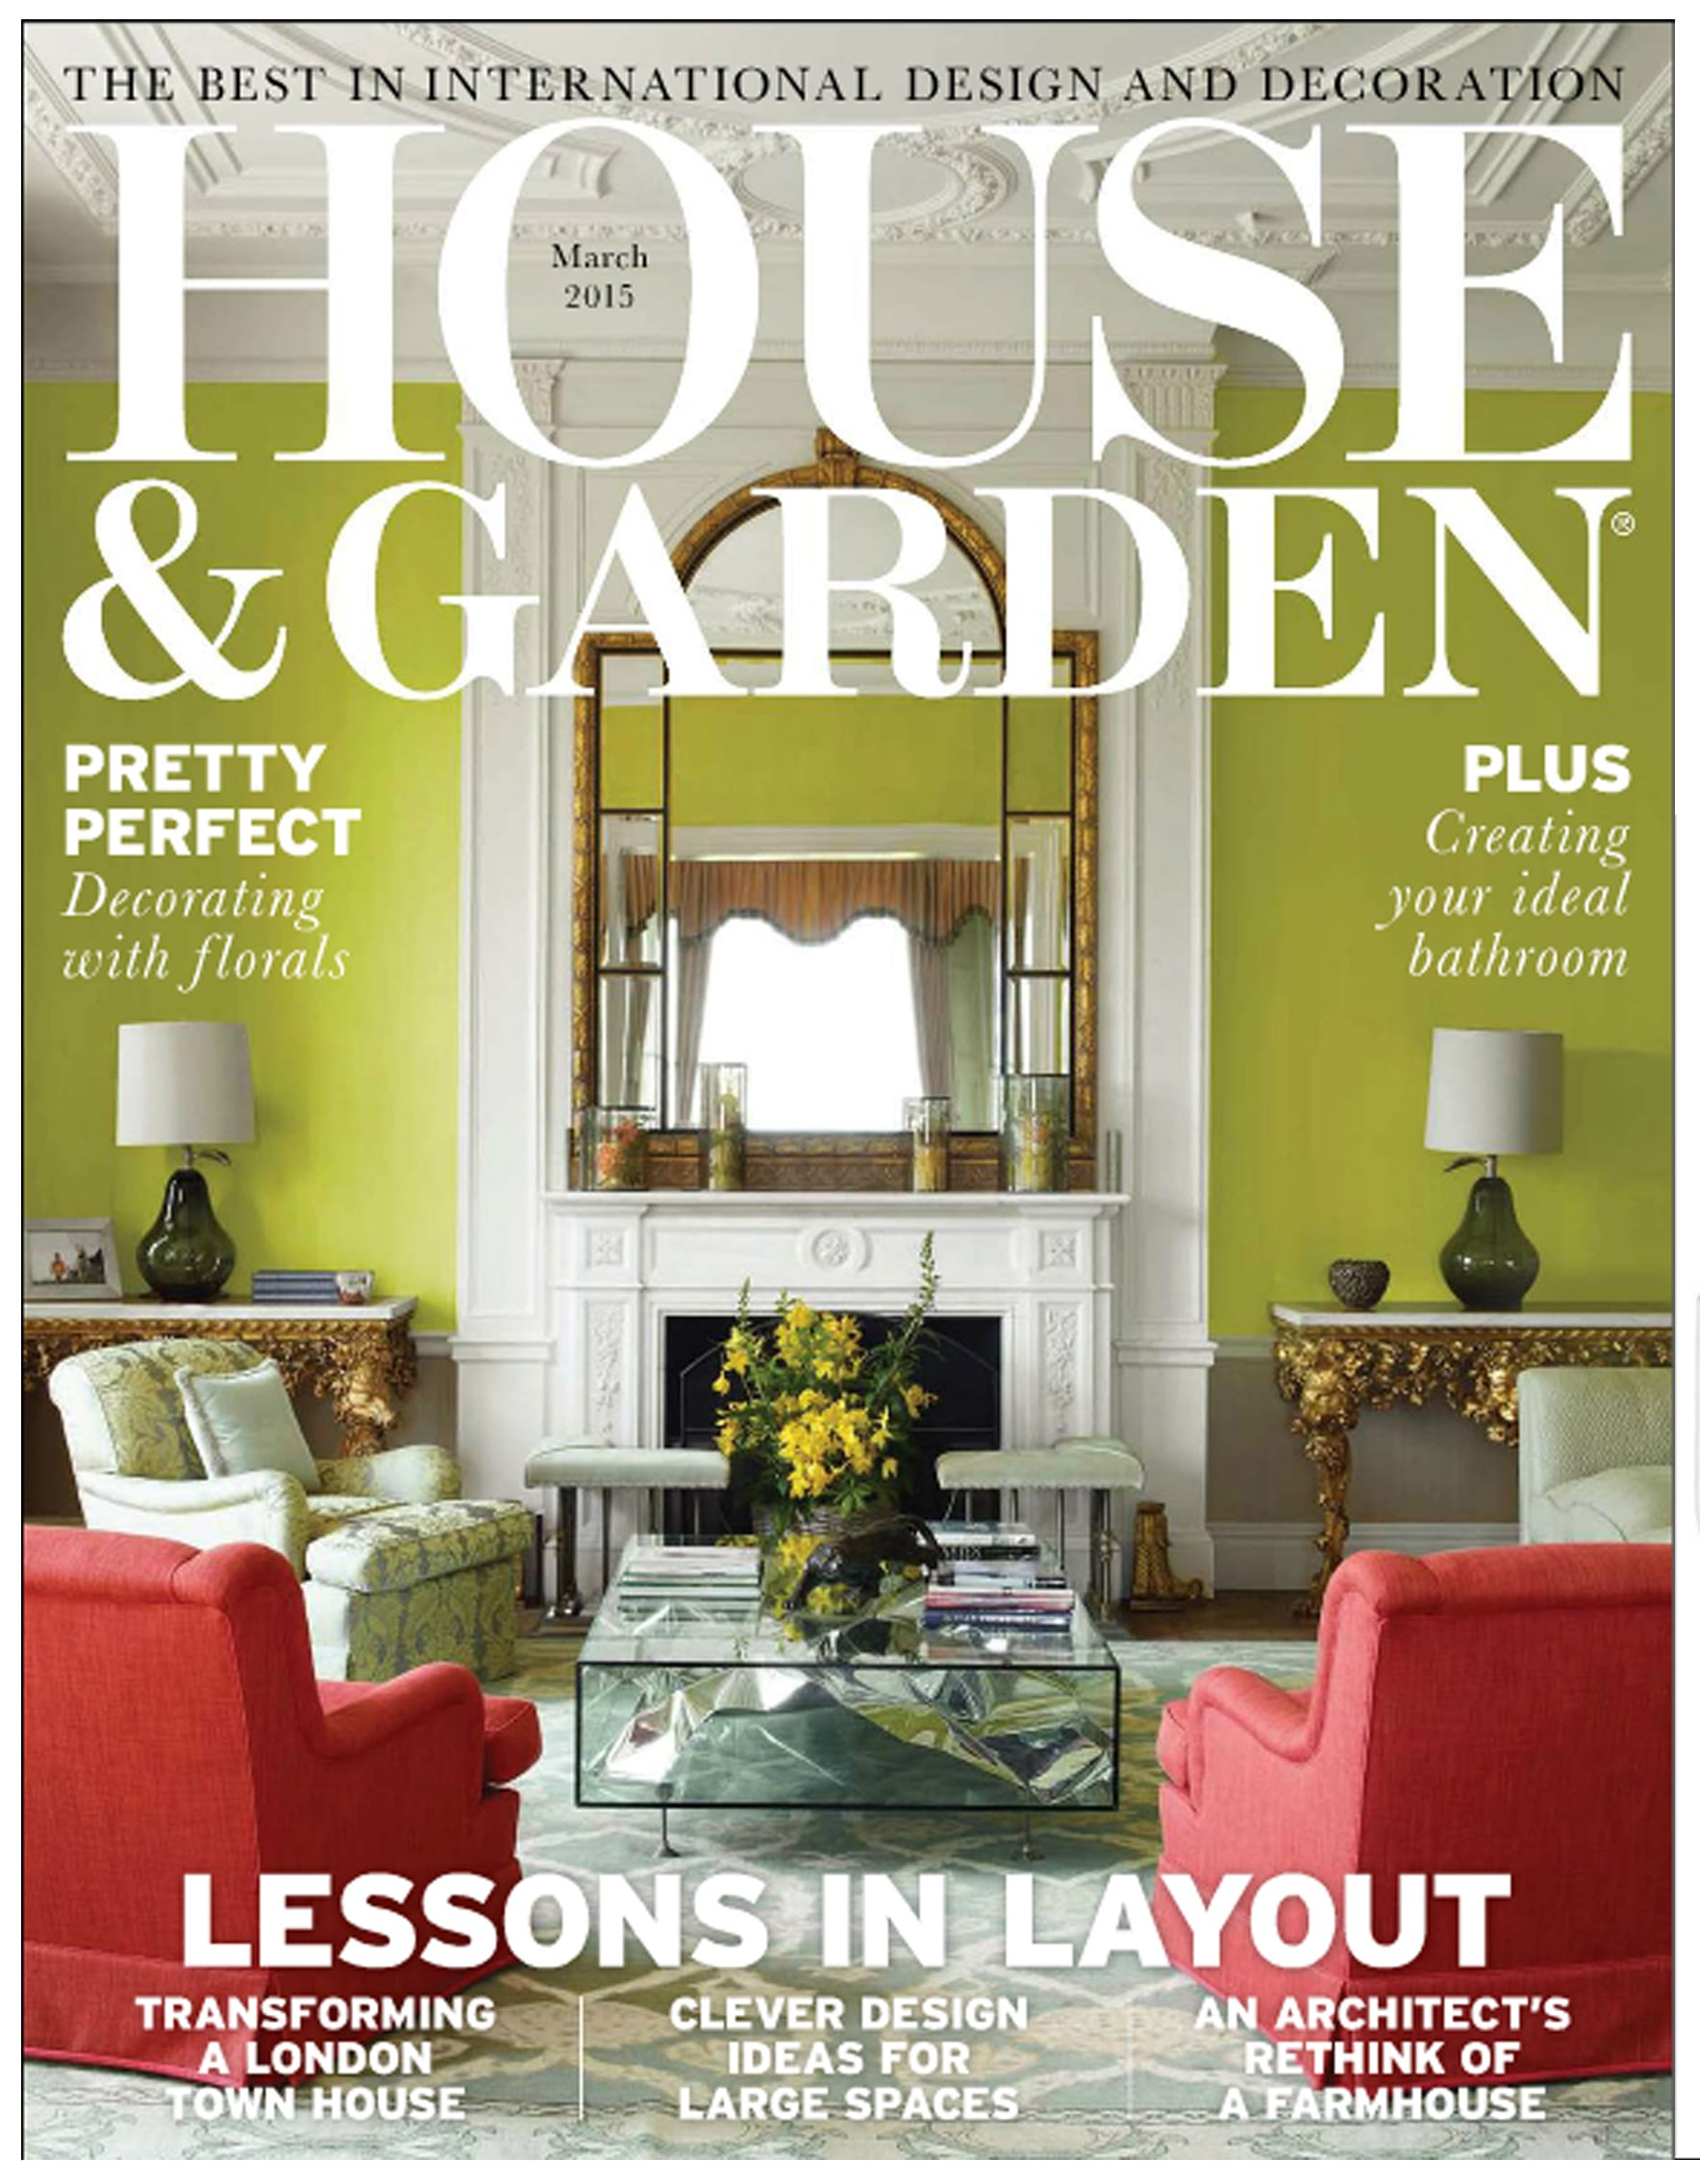 HOUSE & GARDEN MARCH 2015 cover.jpg